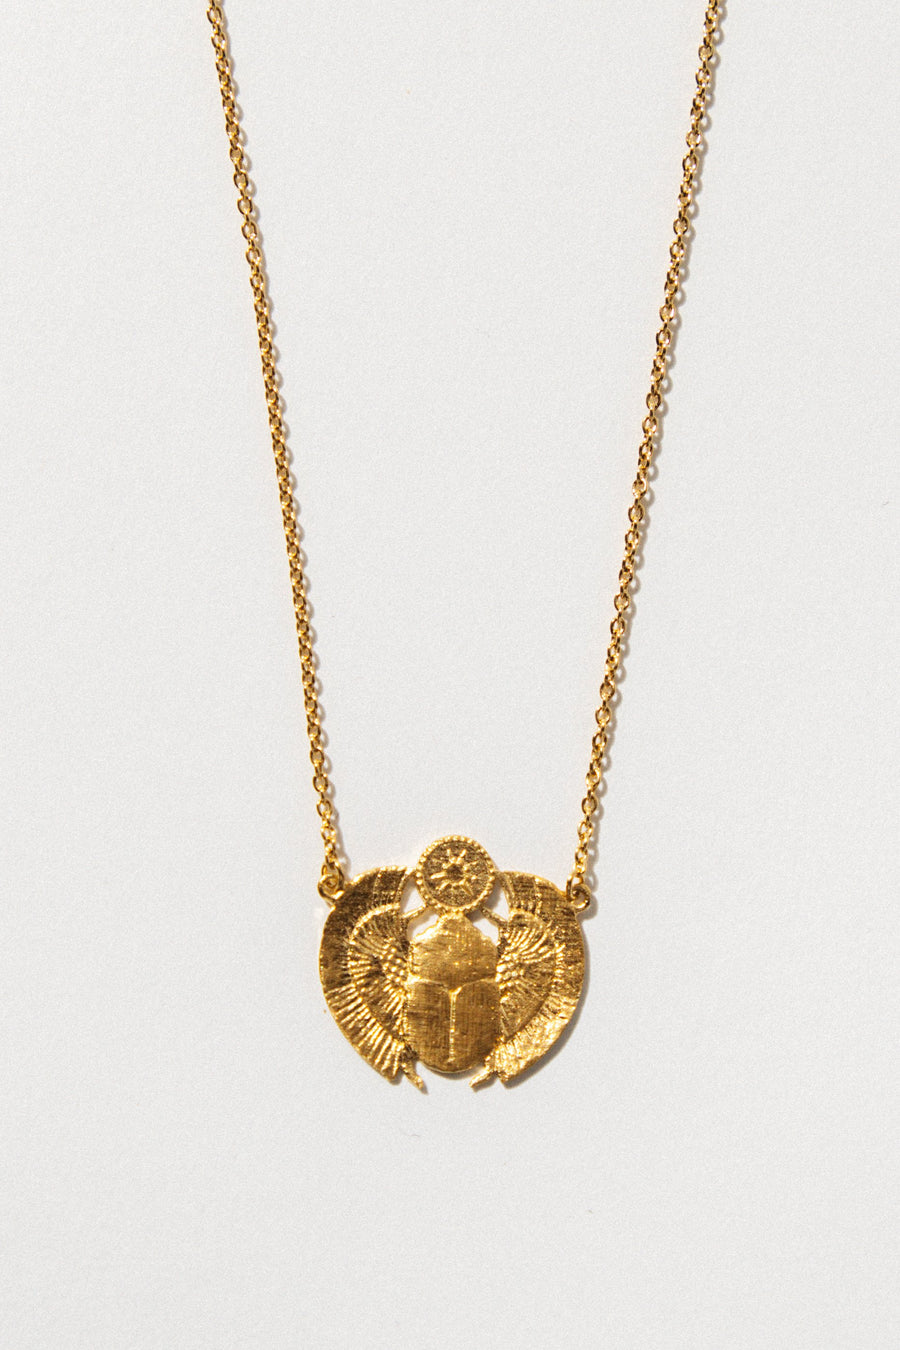 Temple of the Sun Jewelry Gold Scarab Necklace